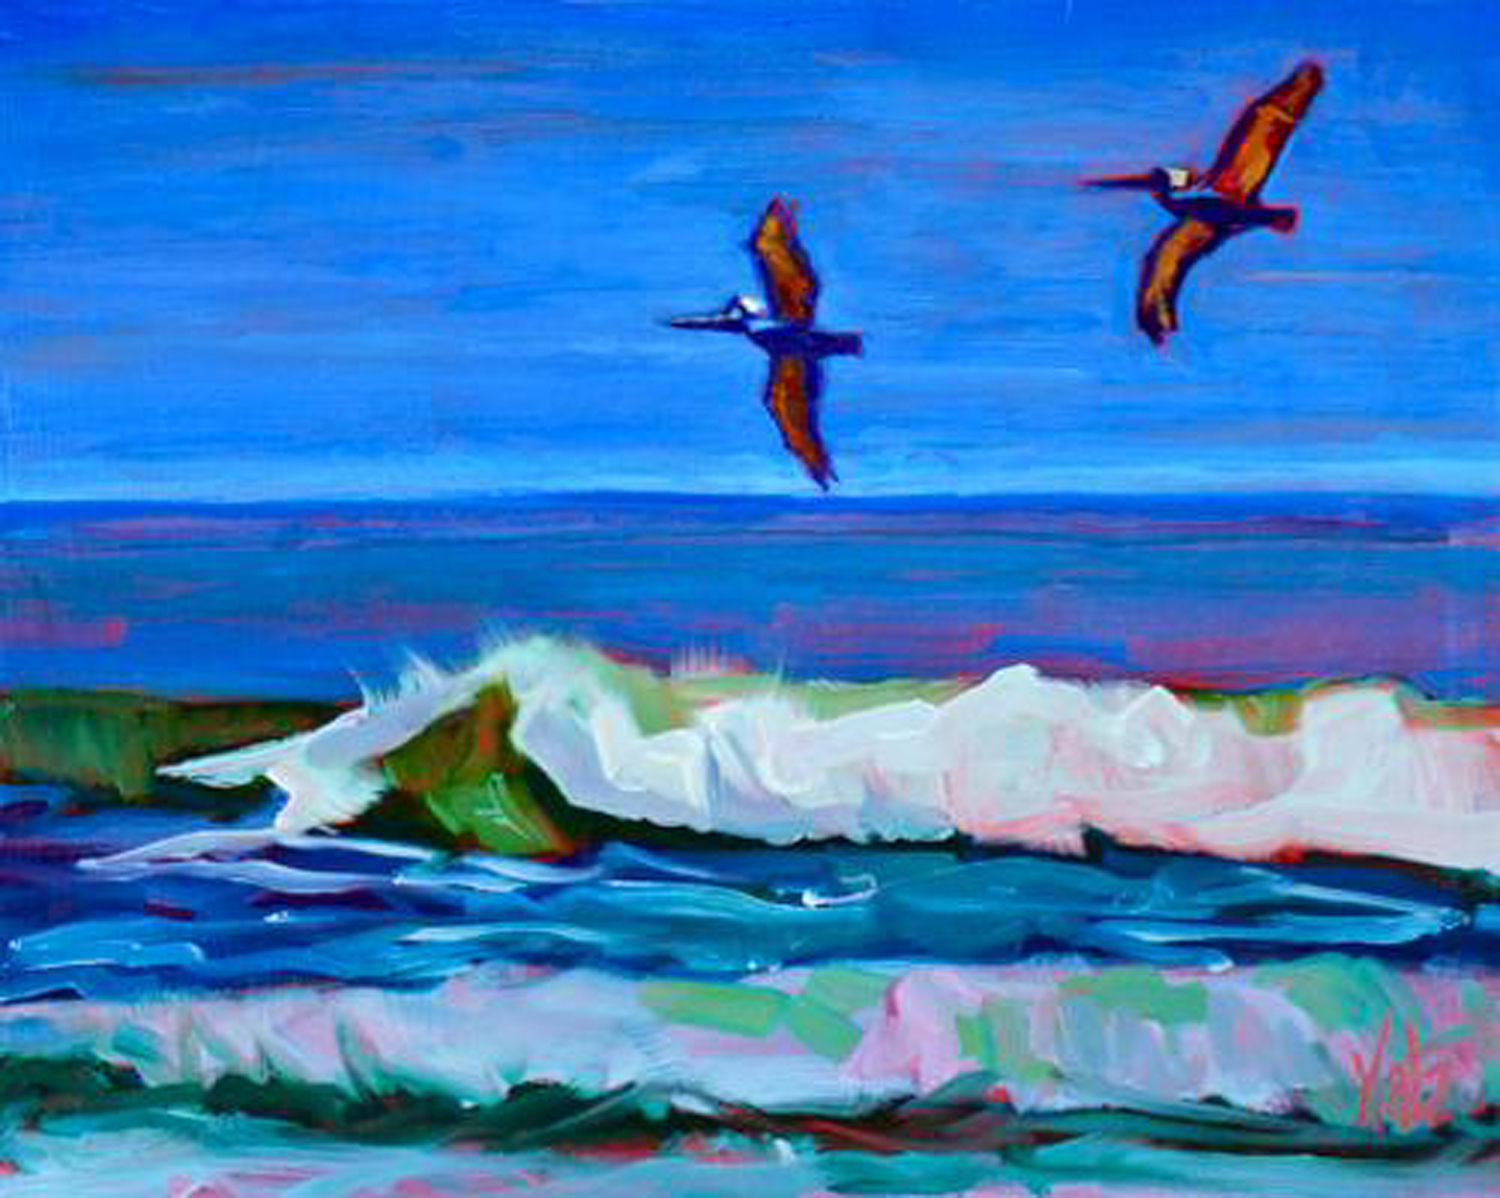 Katz_Pelican Patrol 8x10 Oil on wood 350